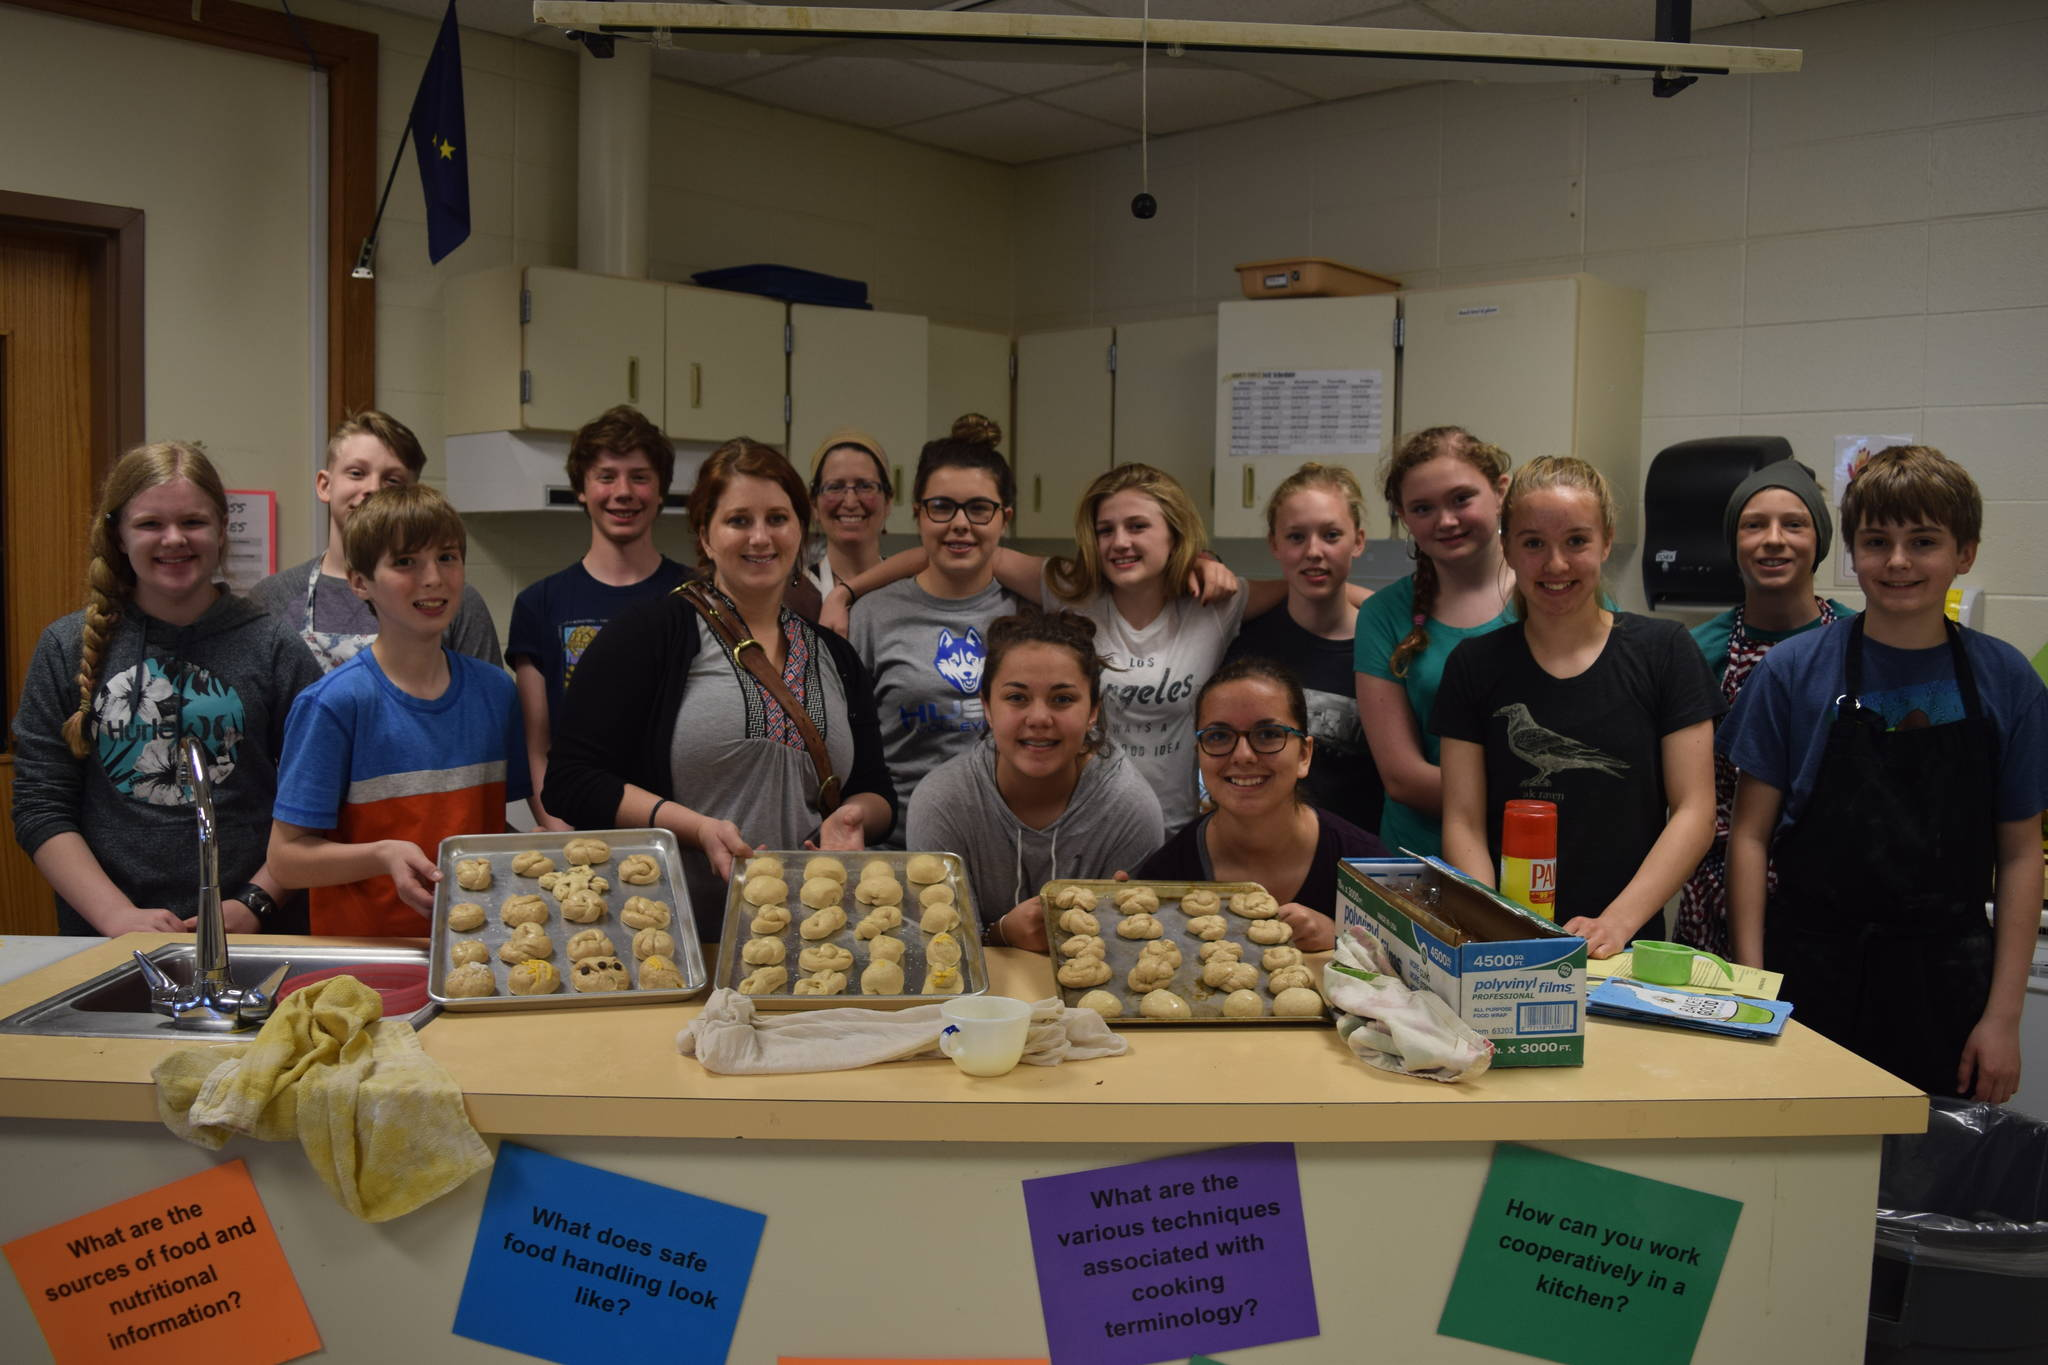 HMS students bake bread for learning, caring